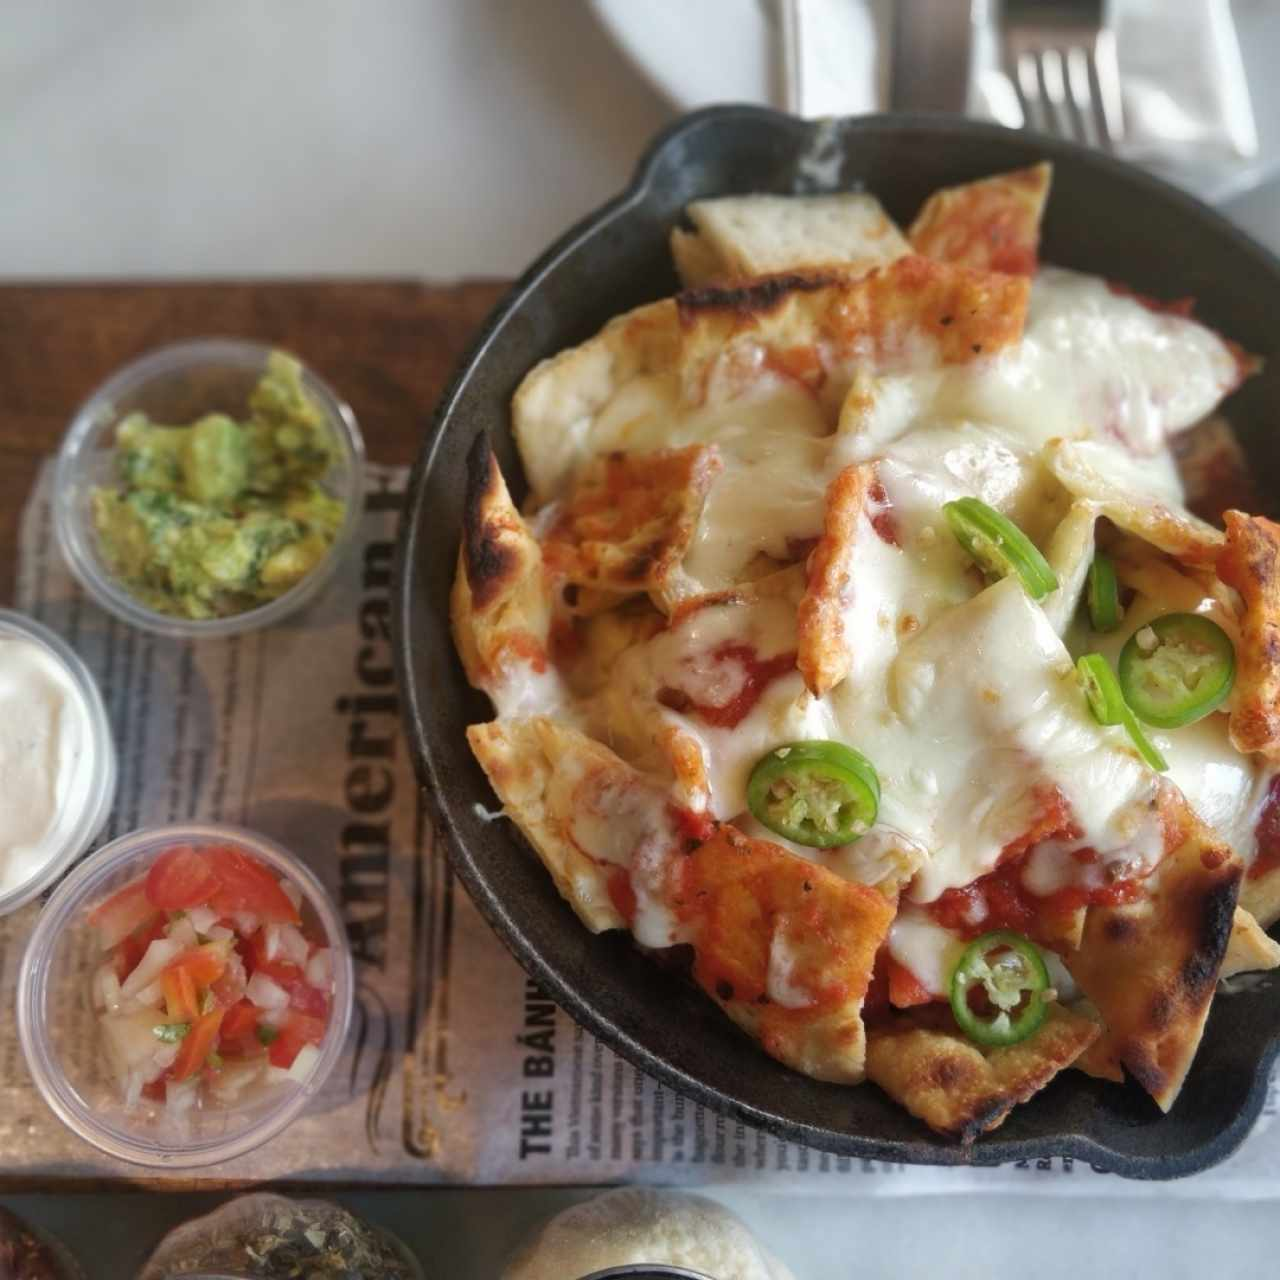 Nacho pizza